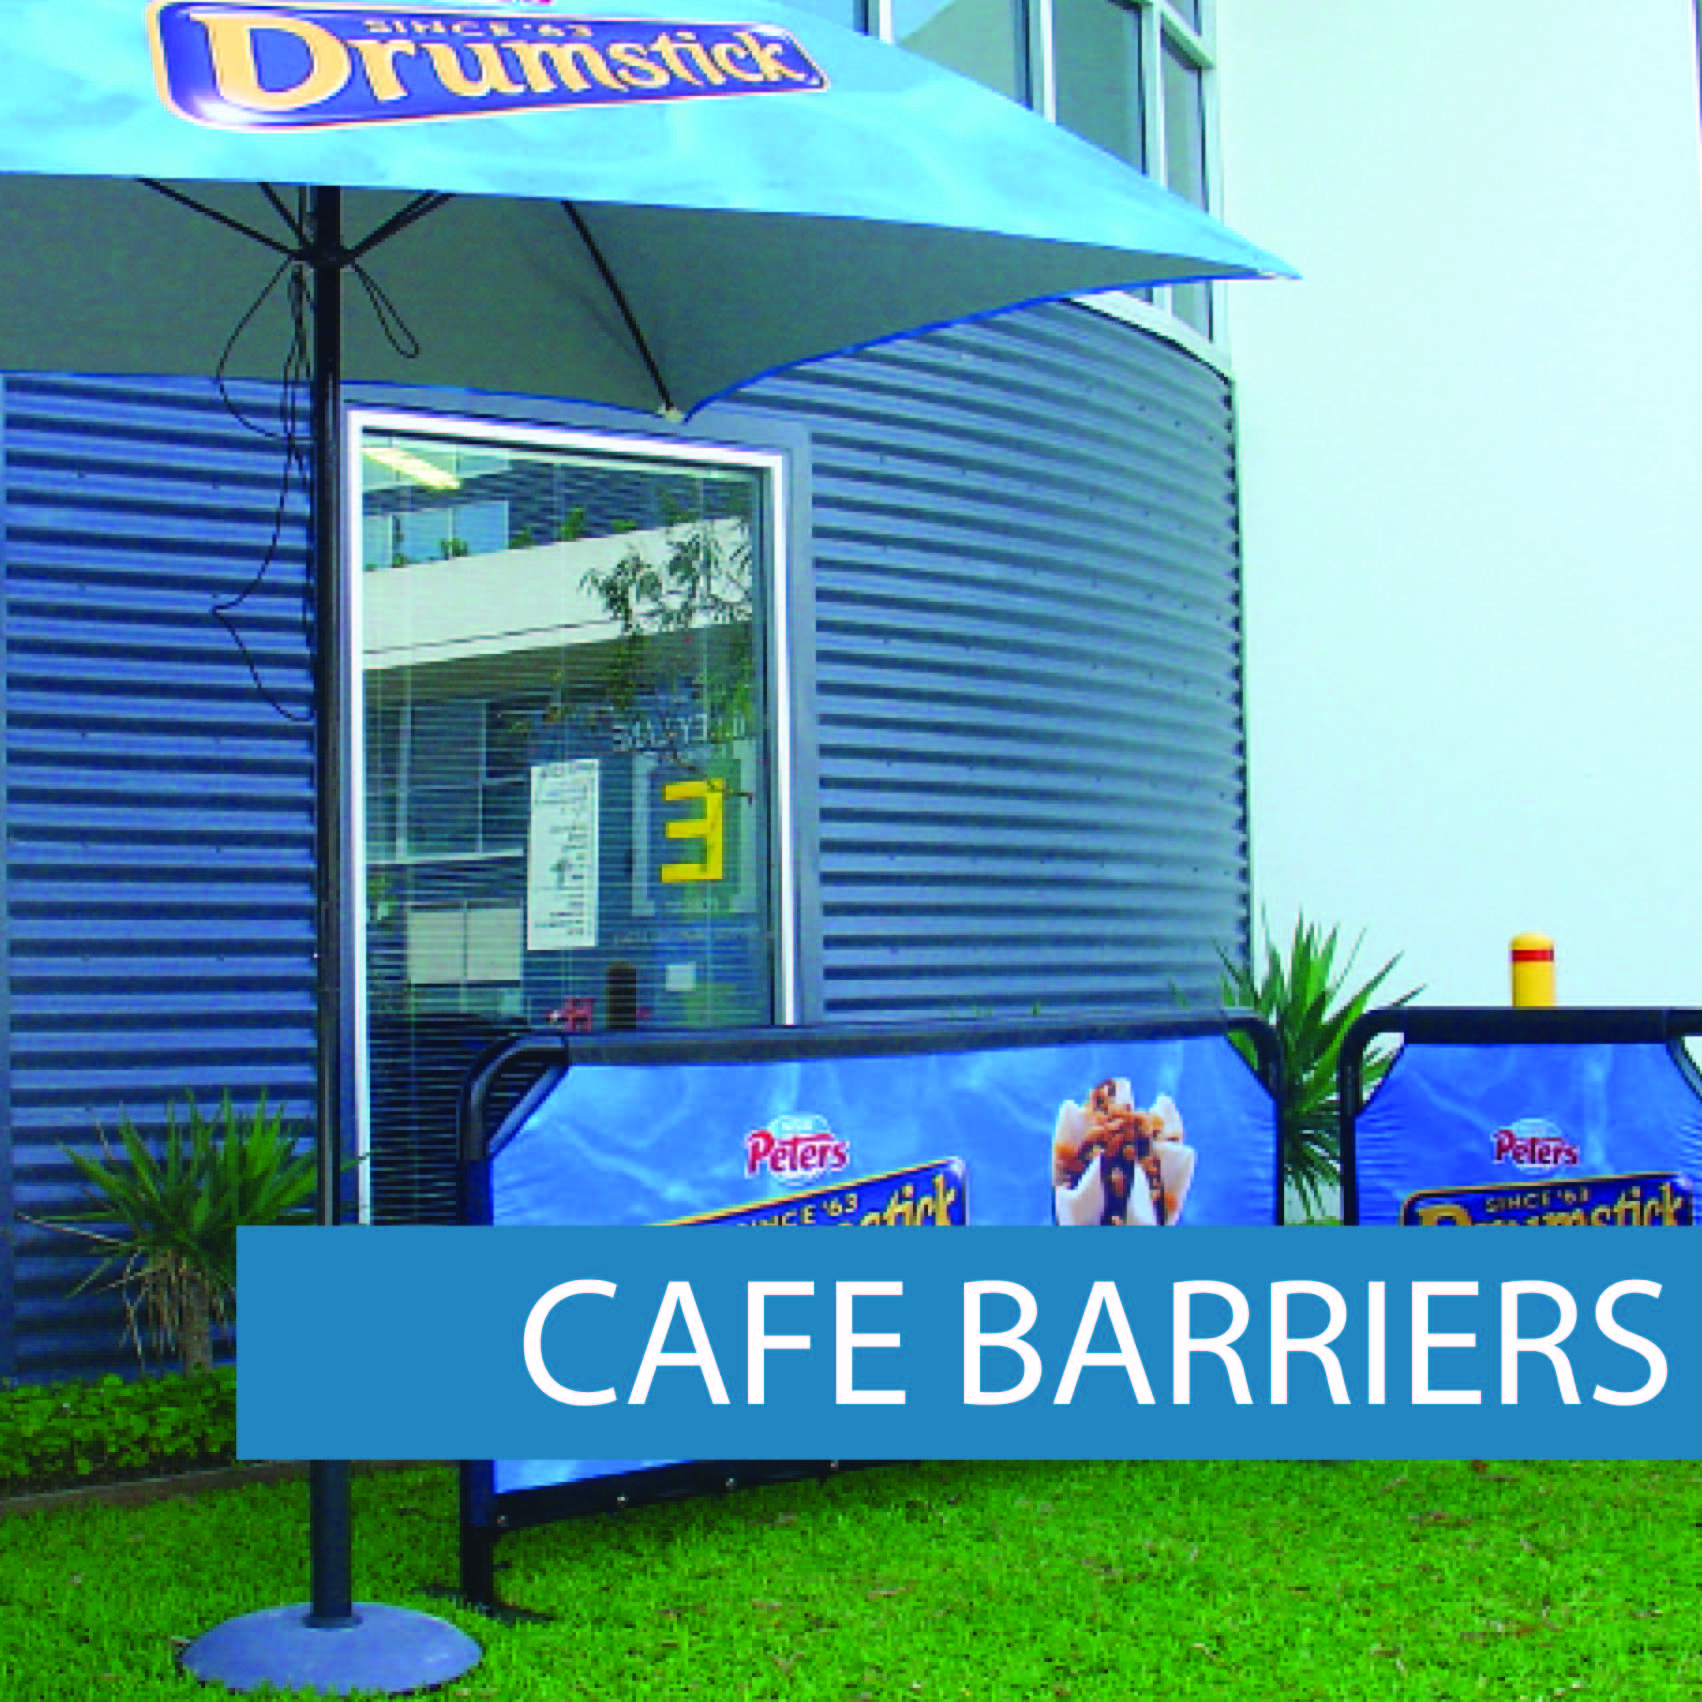 Cafe barriers Street